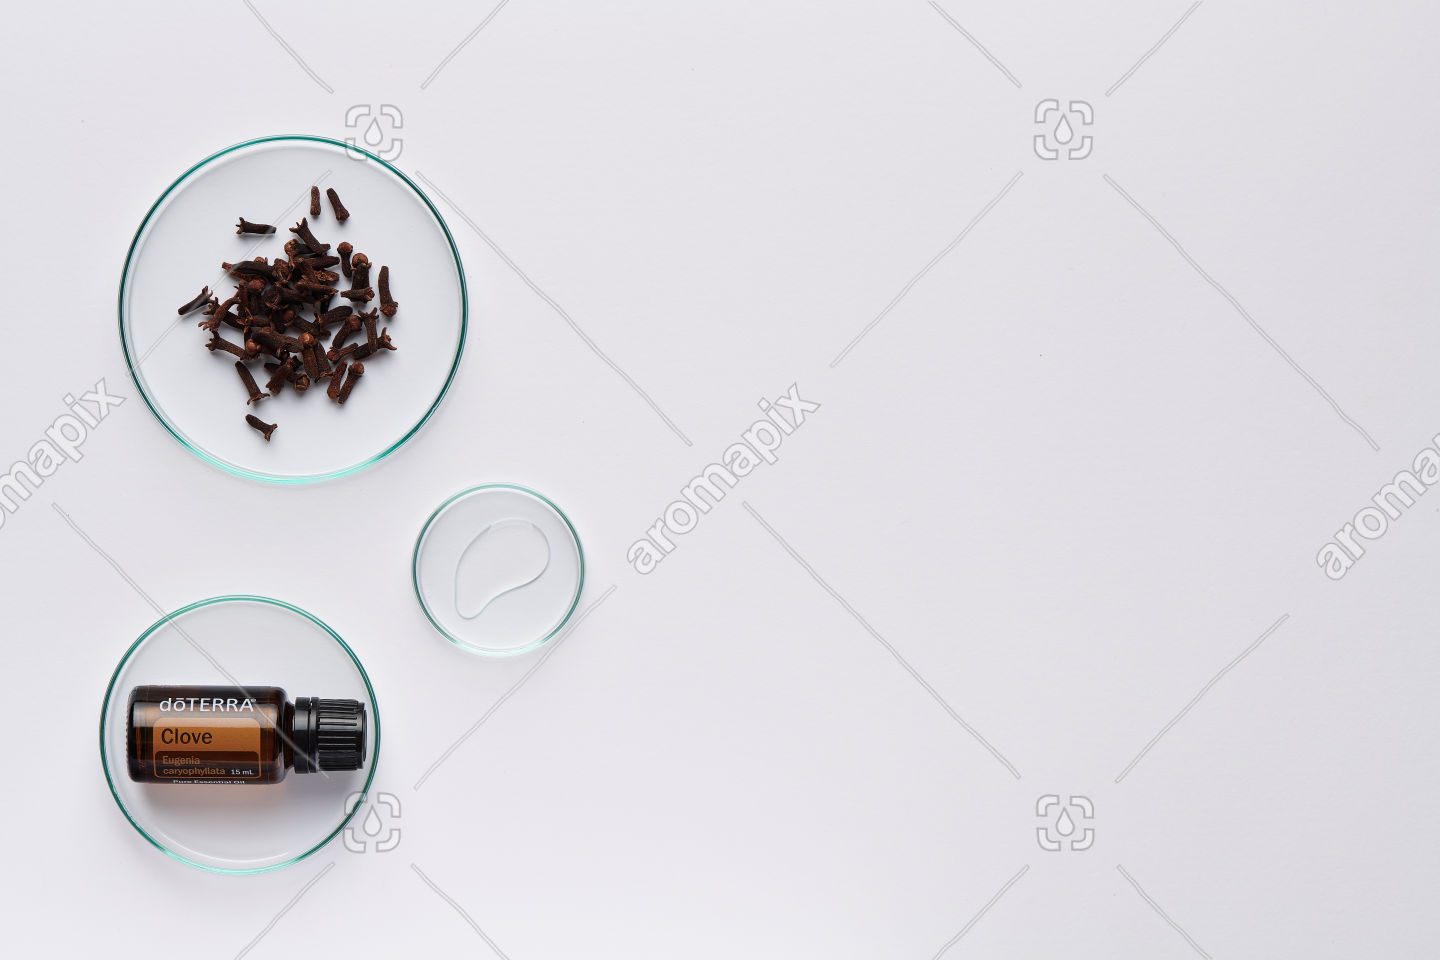 doTERRA Clove with clove buds on white